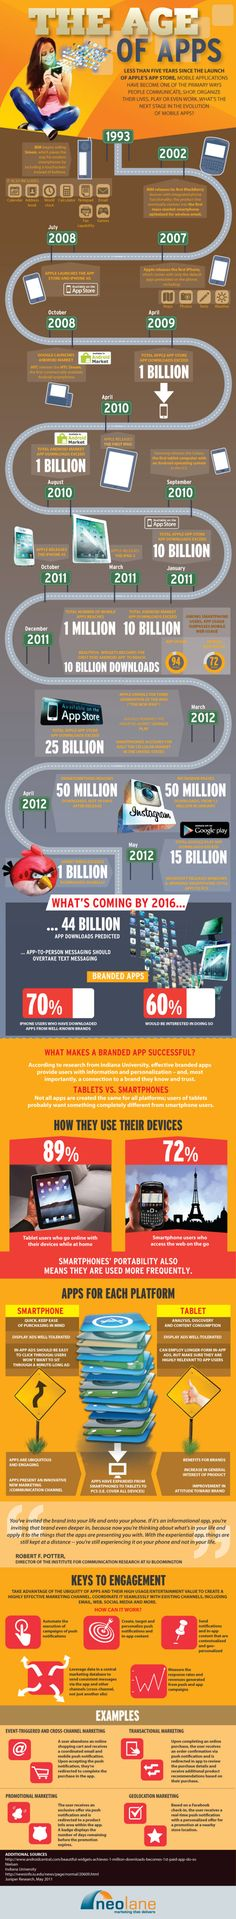 Infographic: The age of apps | TechRepublic